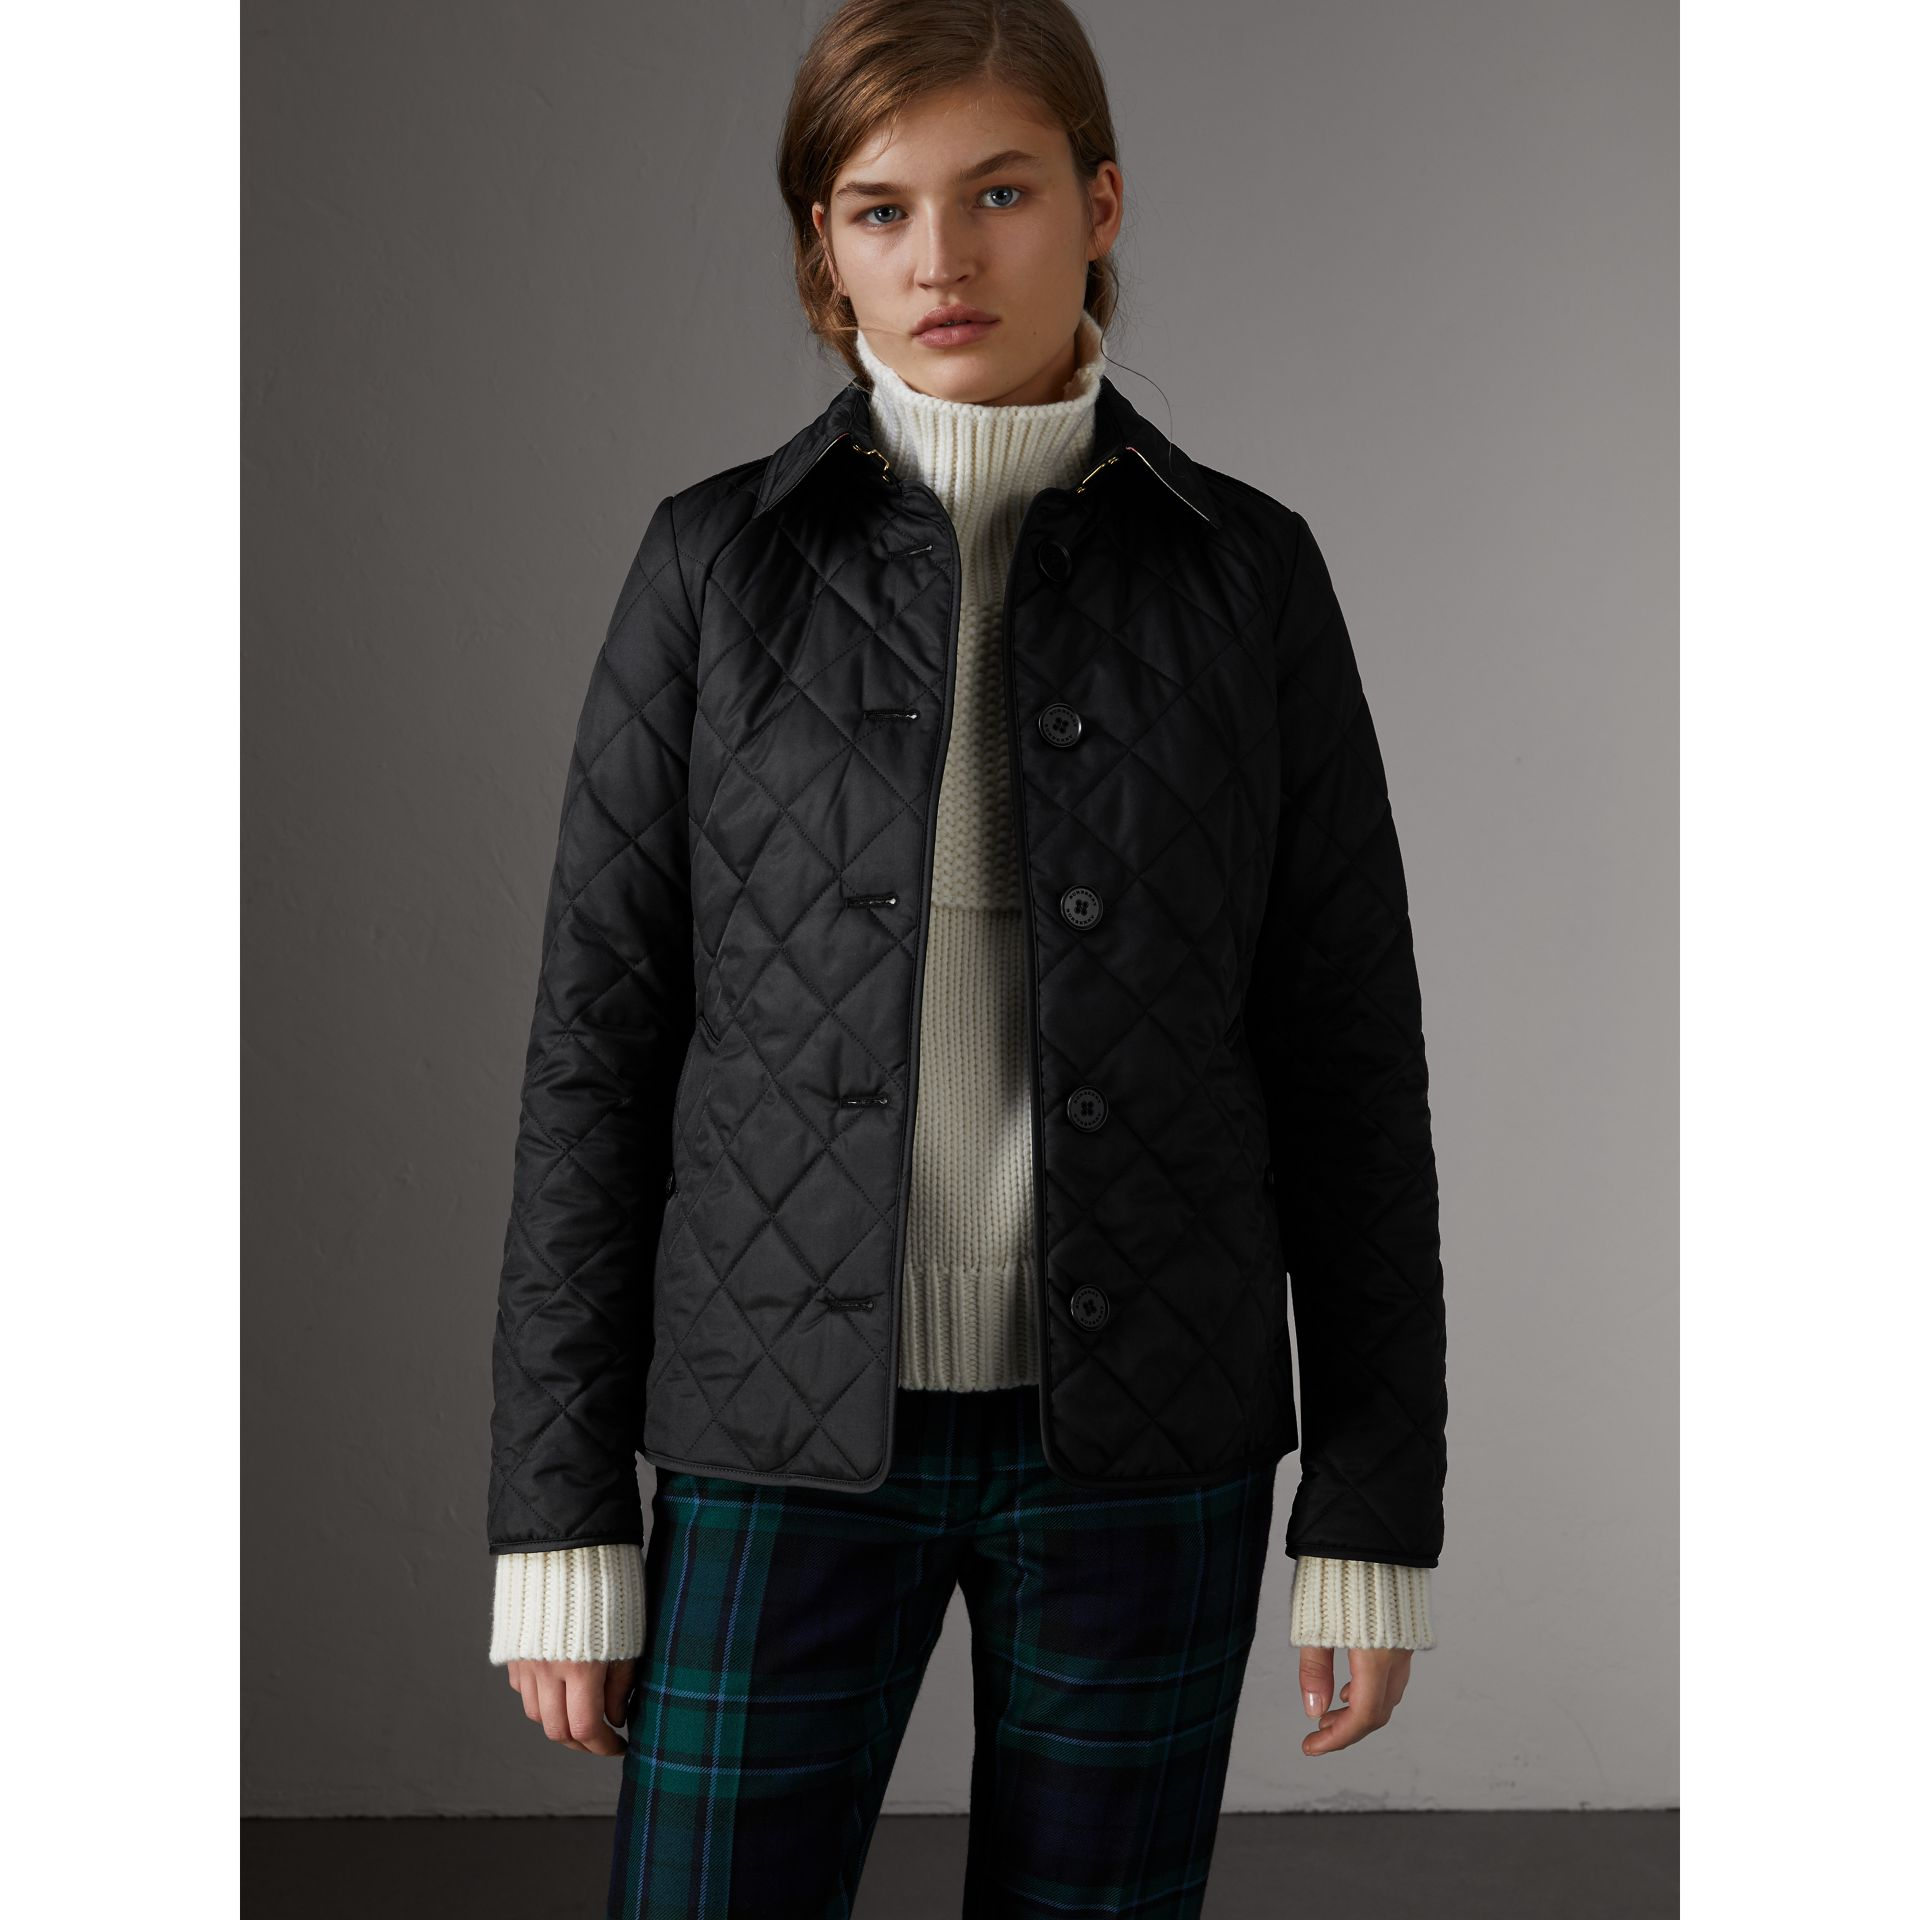 Diamond Quilted Jacket in Black - Women | Burberry Hong Kong - gallery image 5